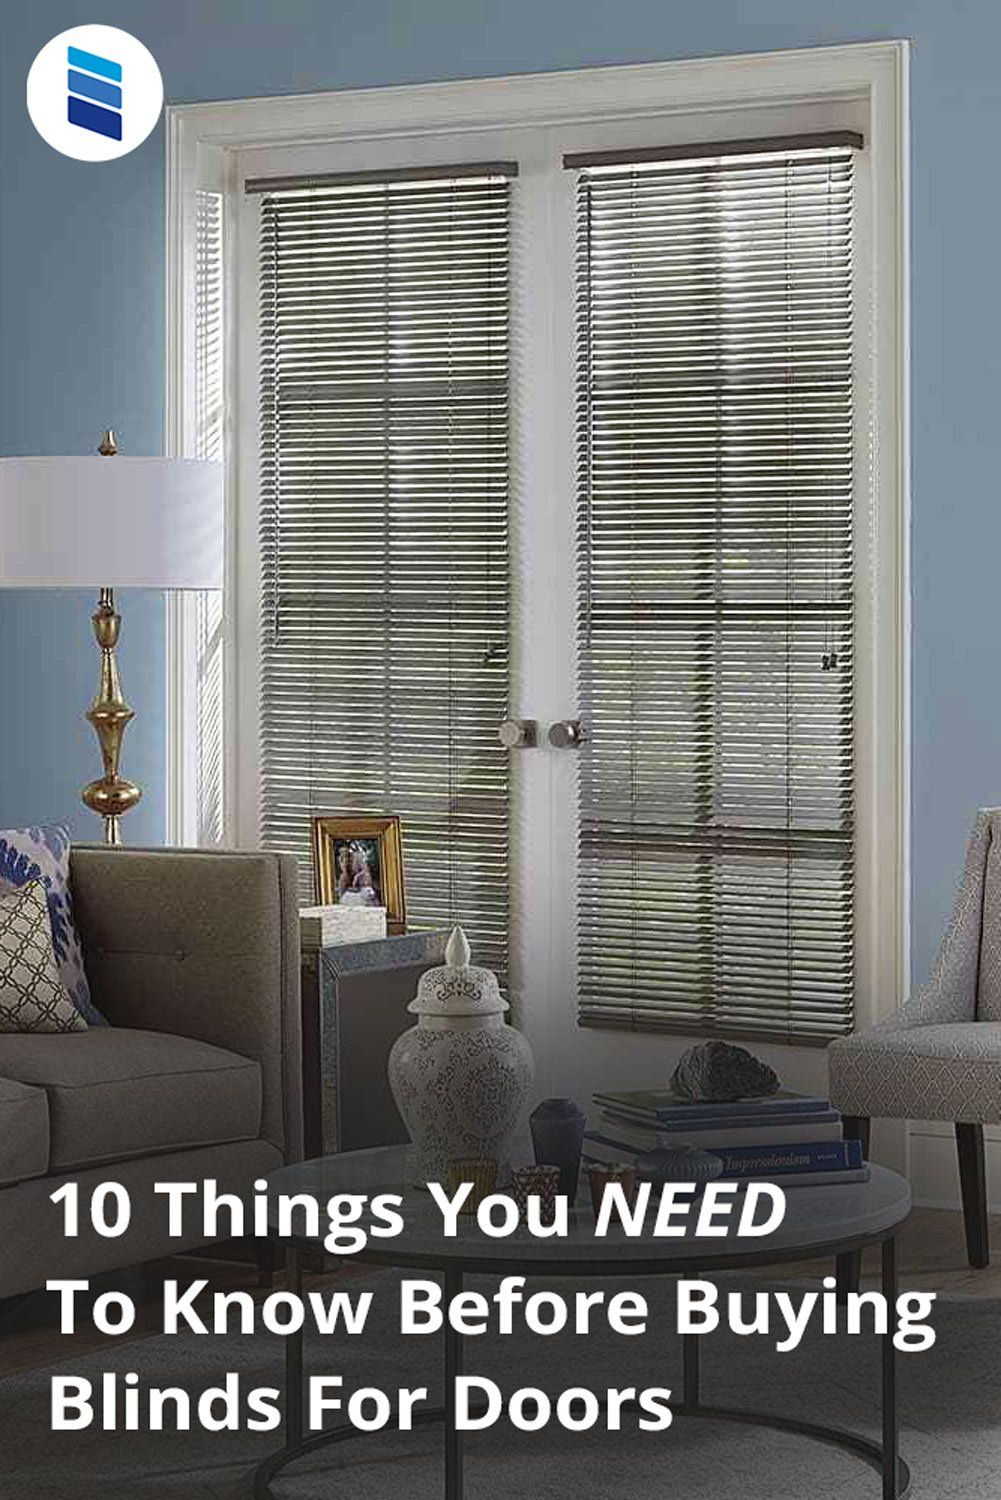 10 Things You Must Know When Buying Blinds For Doors Blinds Com In 2020 French Door Coverings Blinds Door Coverings